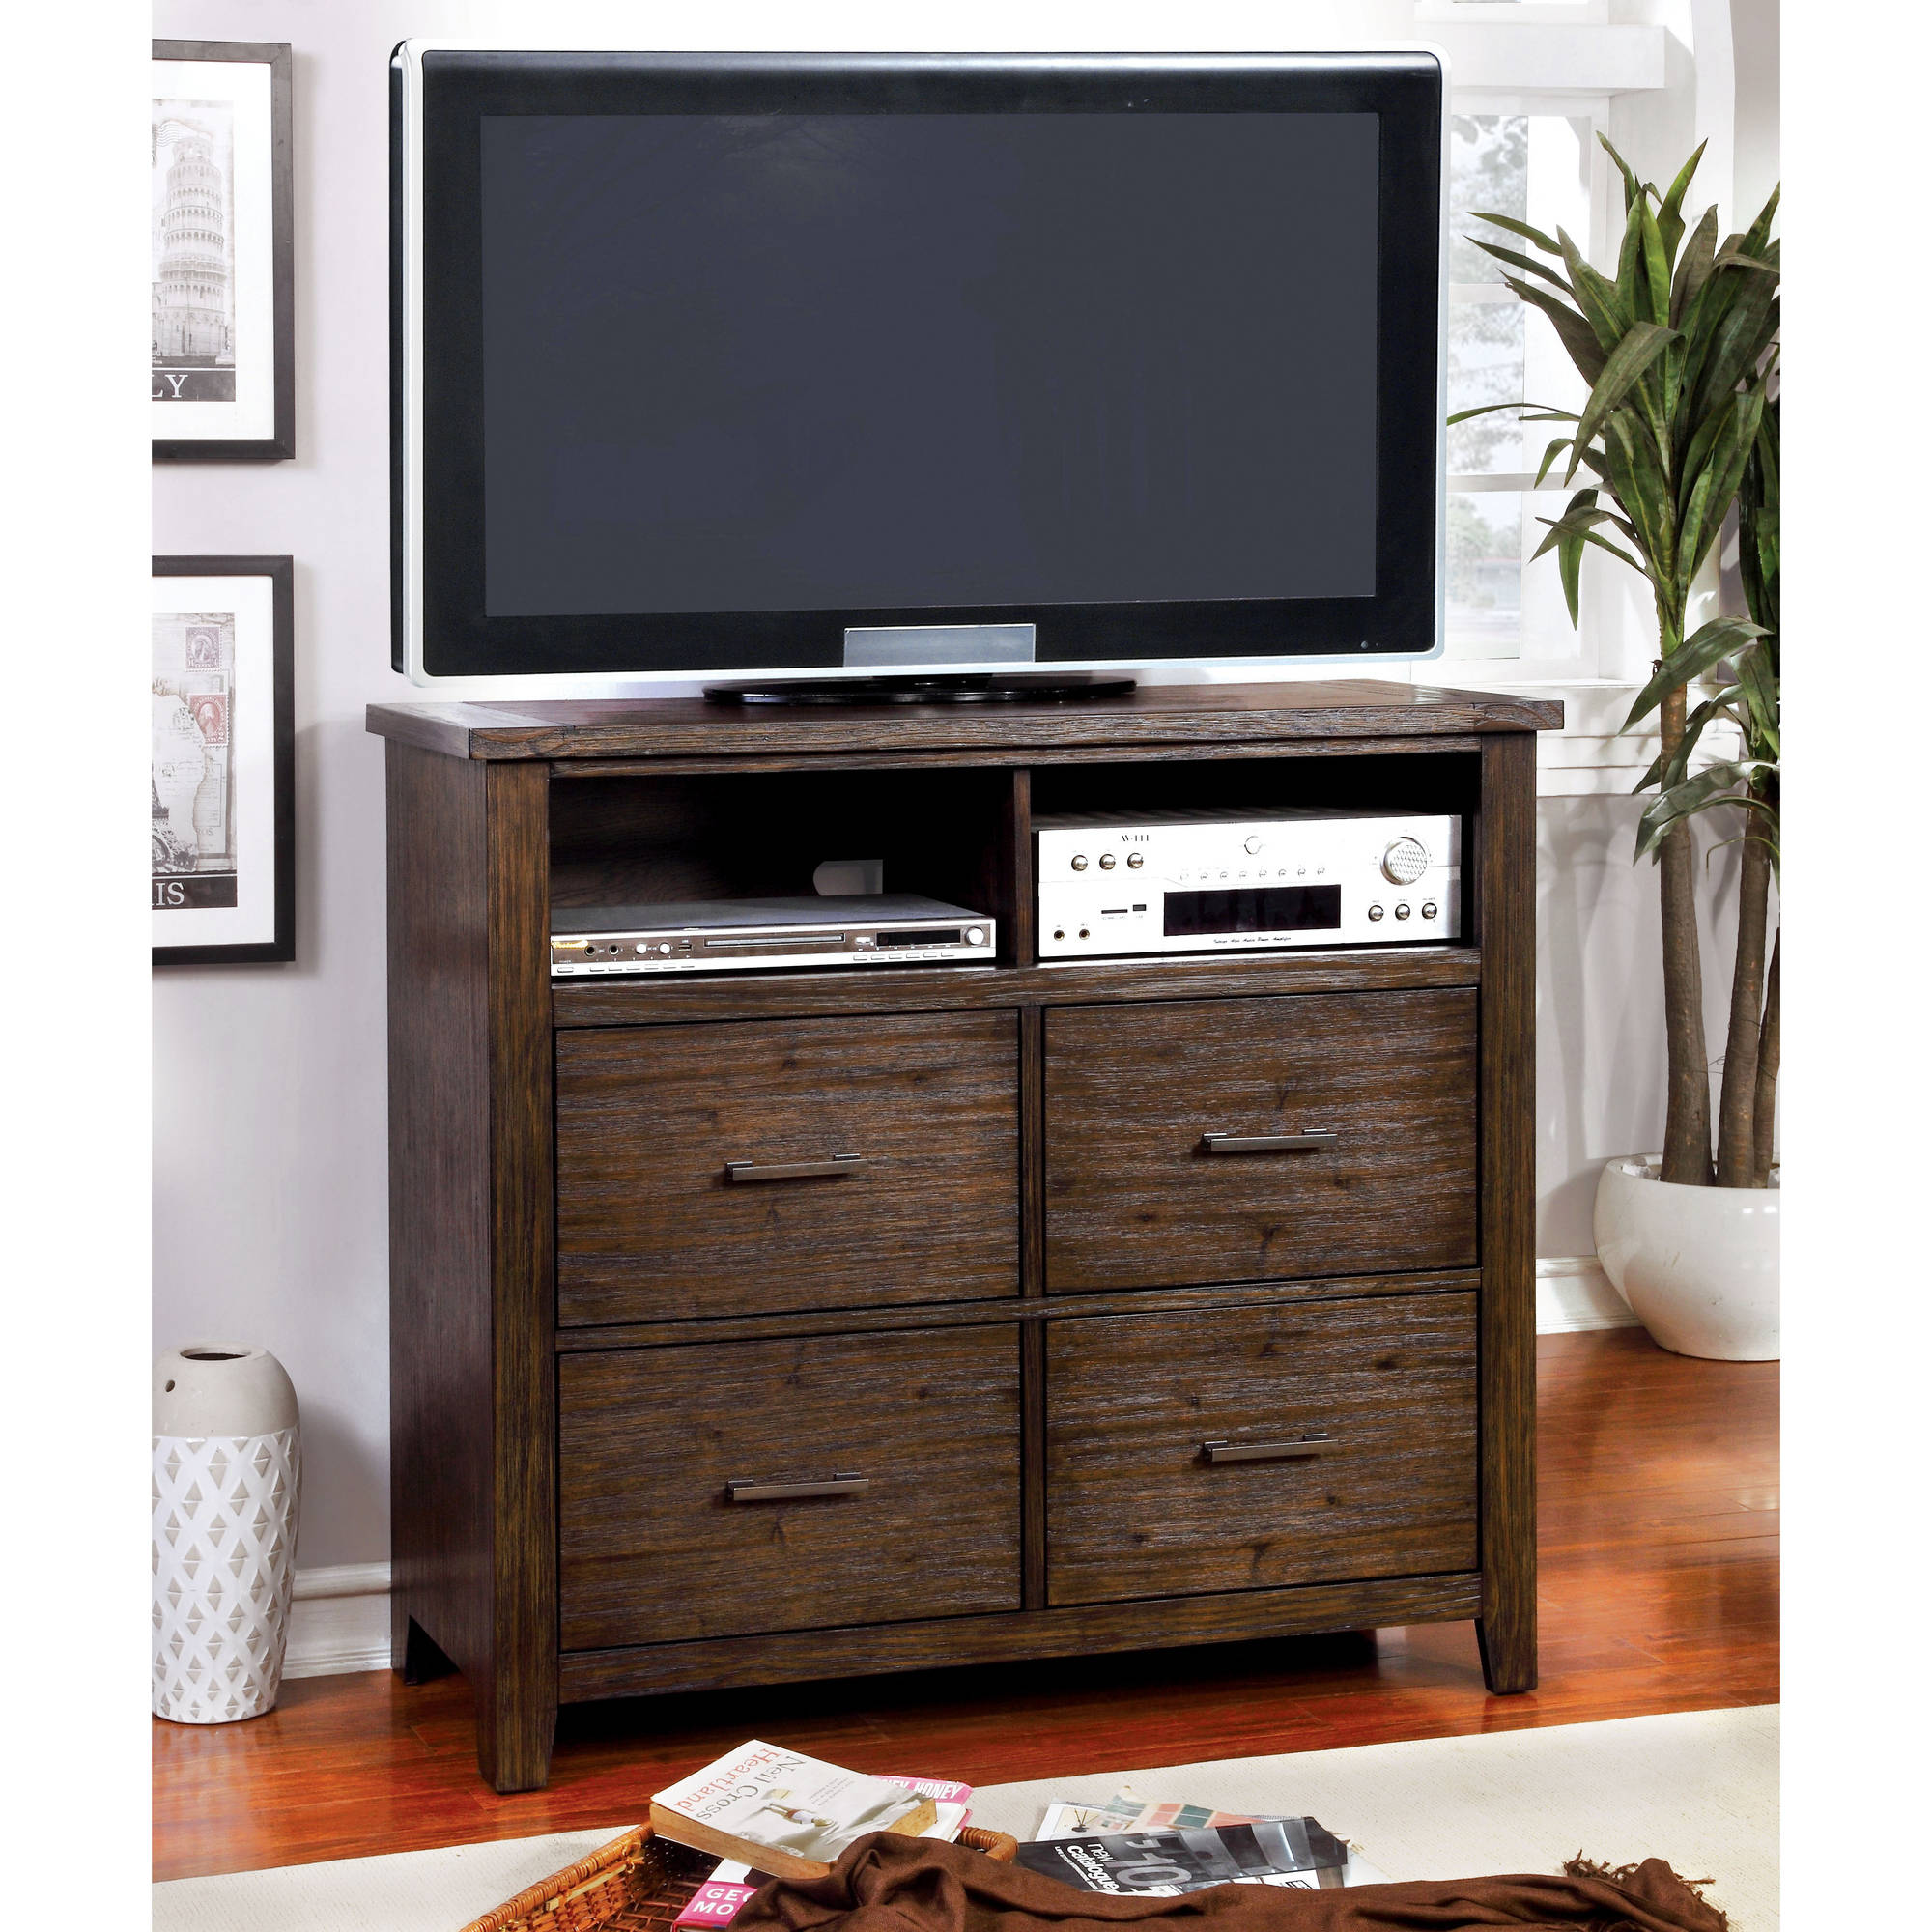 Furniture of America Raylene Rustic Media Chest, Dark Walnut